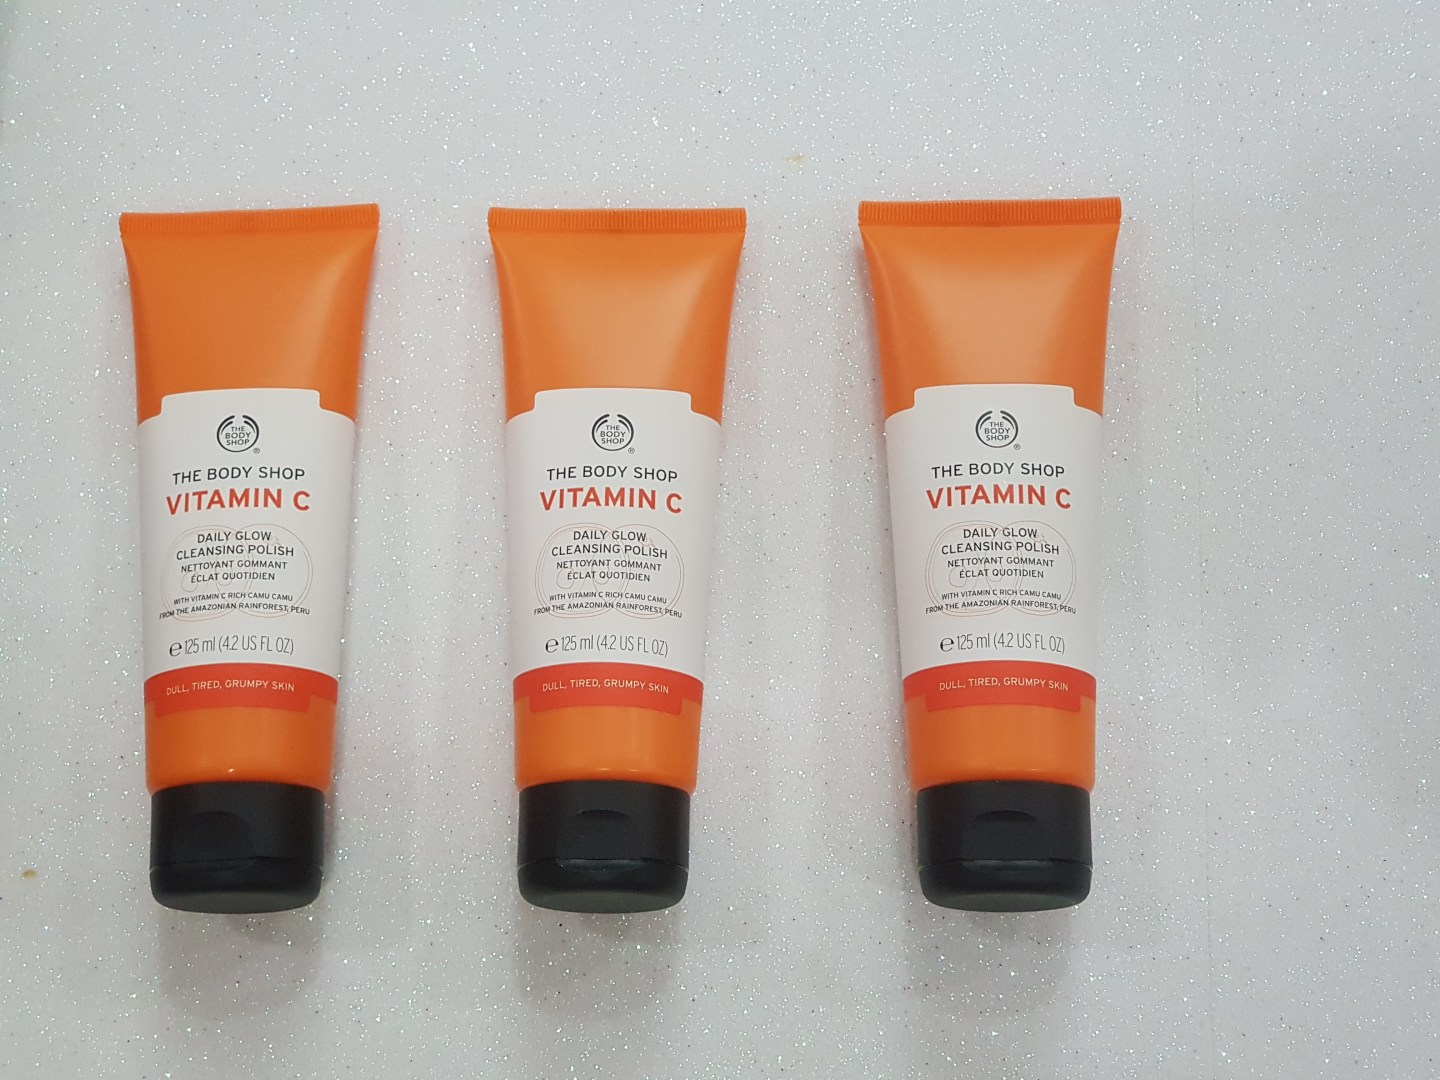 The Body Shop Vitamin C Daily Glow Cleansing Polish And Glow Boosting Moisturiser Review